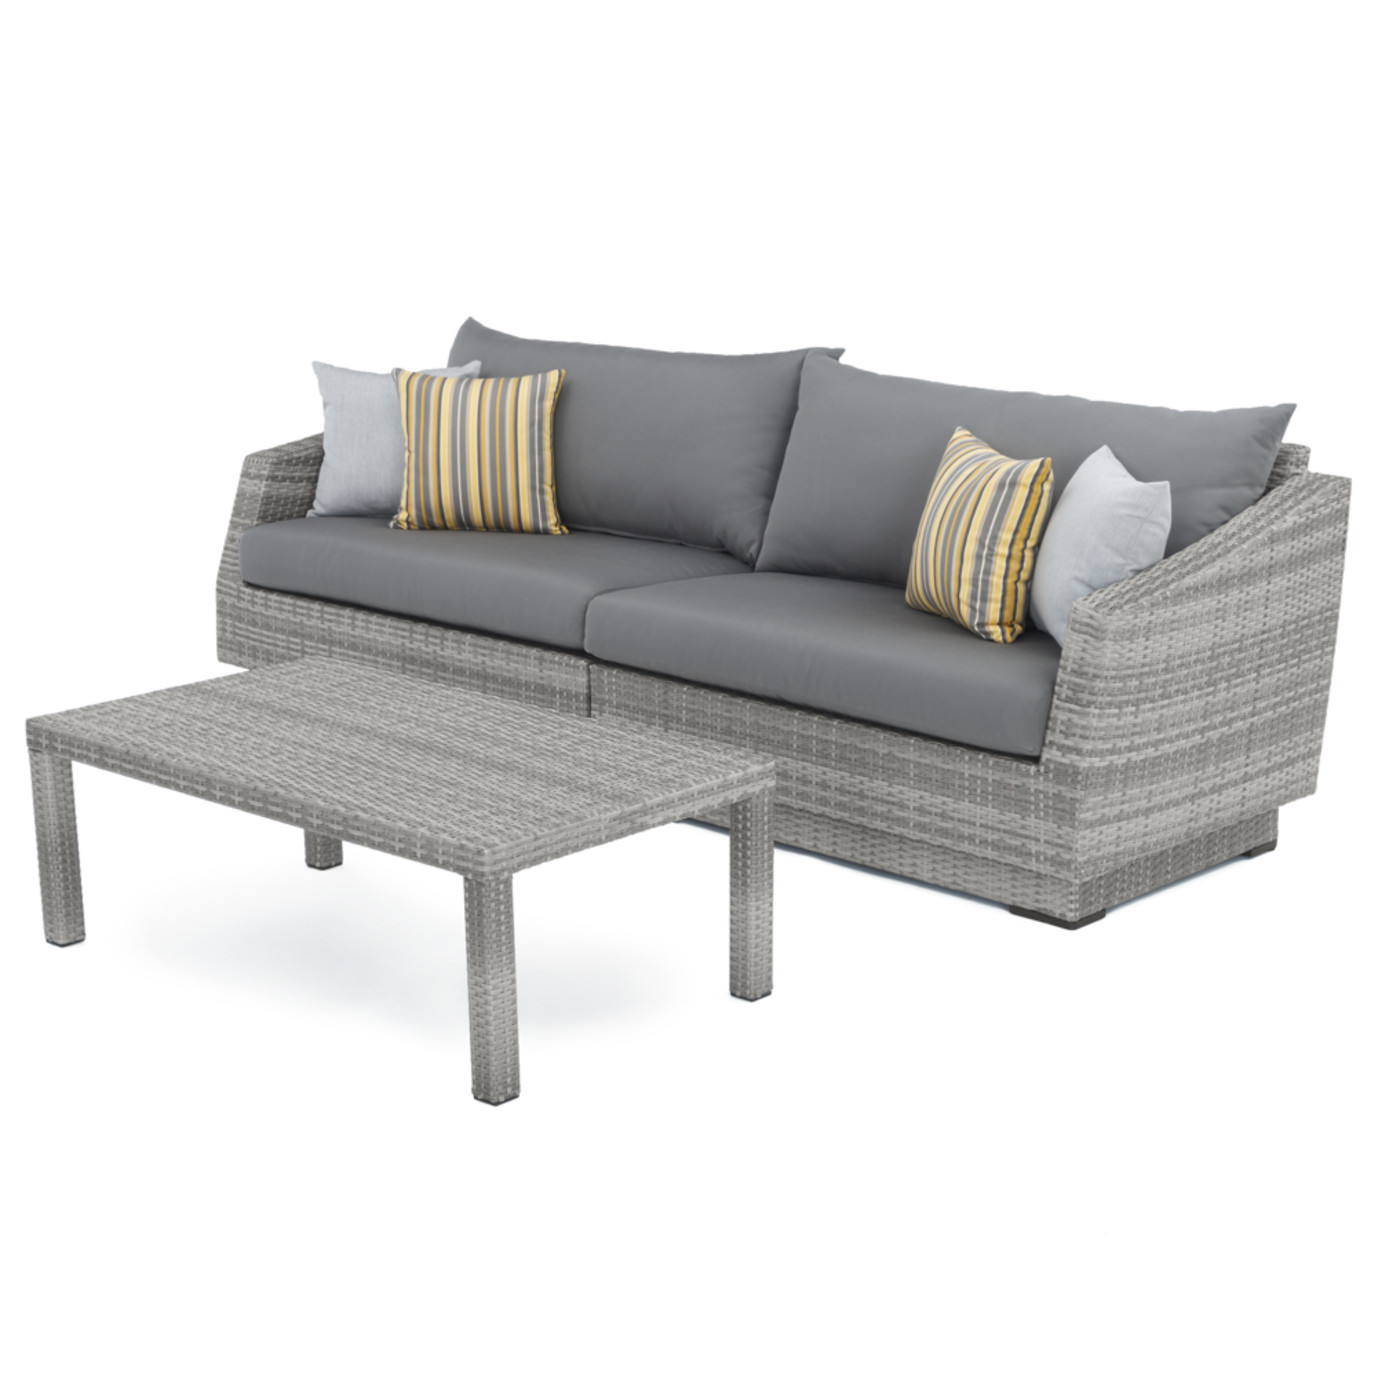 Cannes Sofa And Coffee Table Charcoal Grey Rst Brands